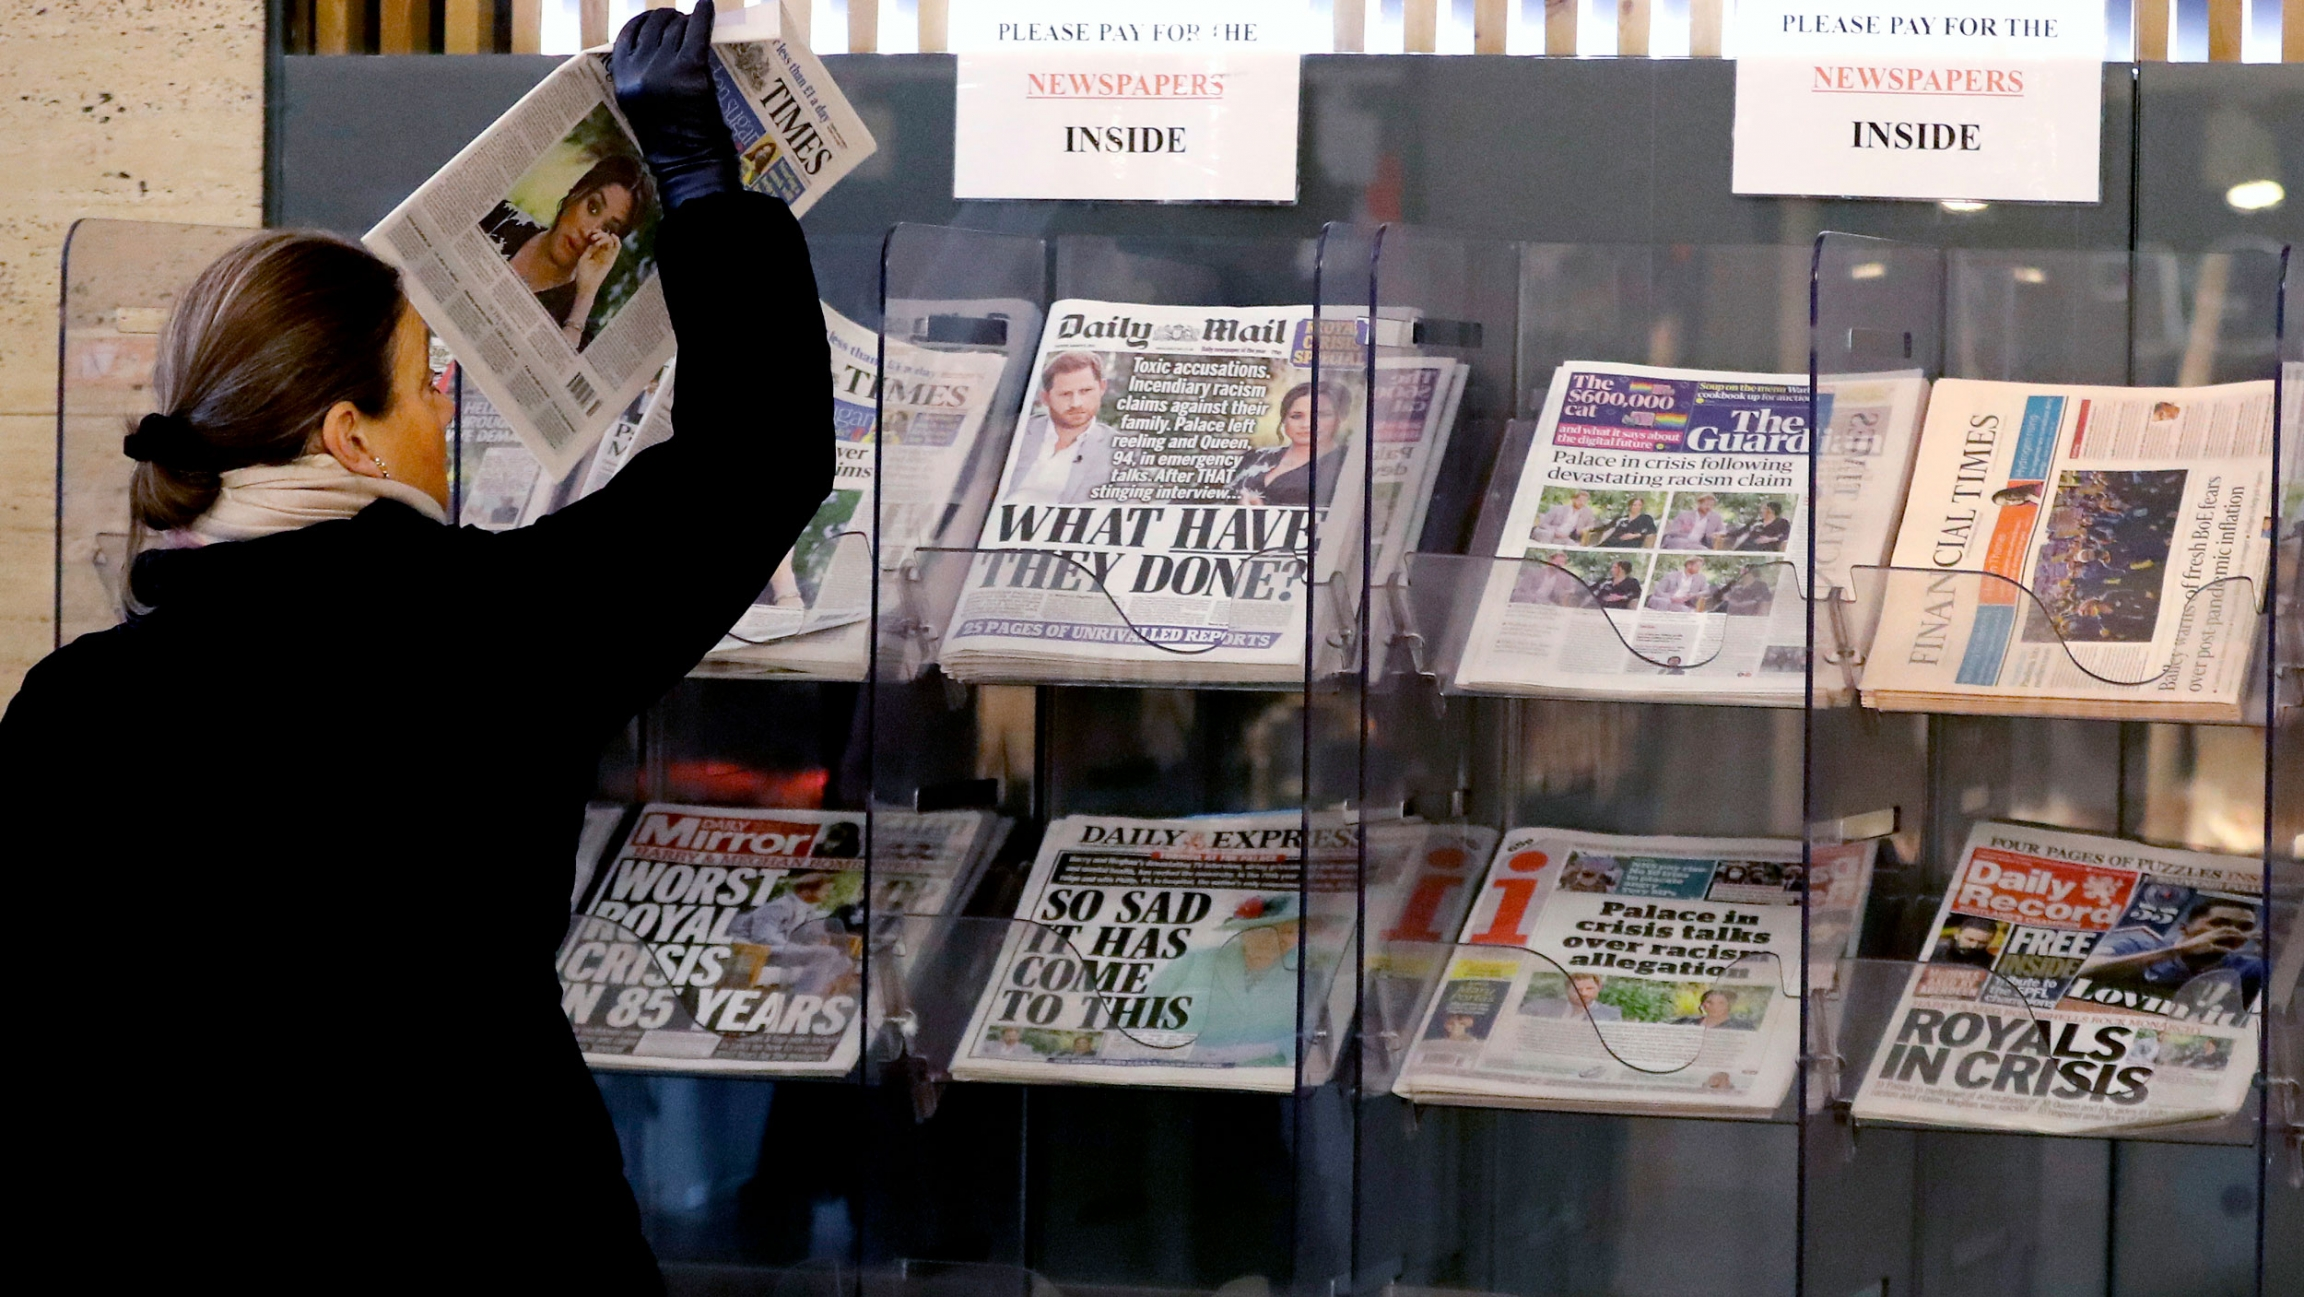 A woman is shown wearing a dark coat and pulling a newspaper out of a stand in a row of several other newspapers.